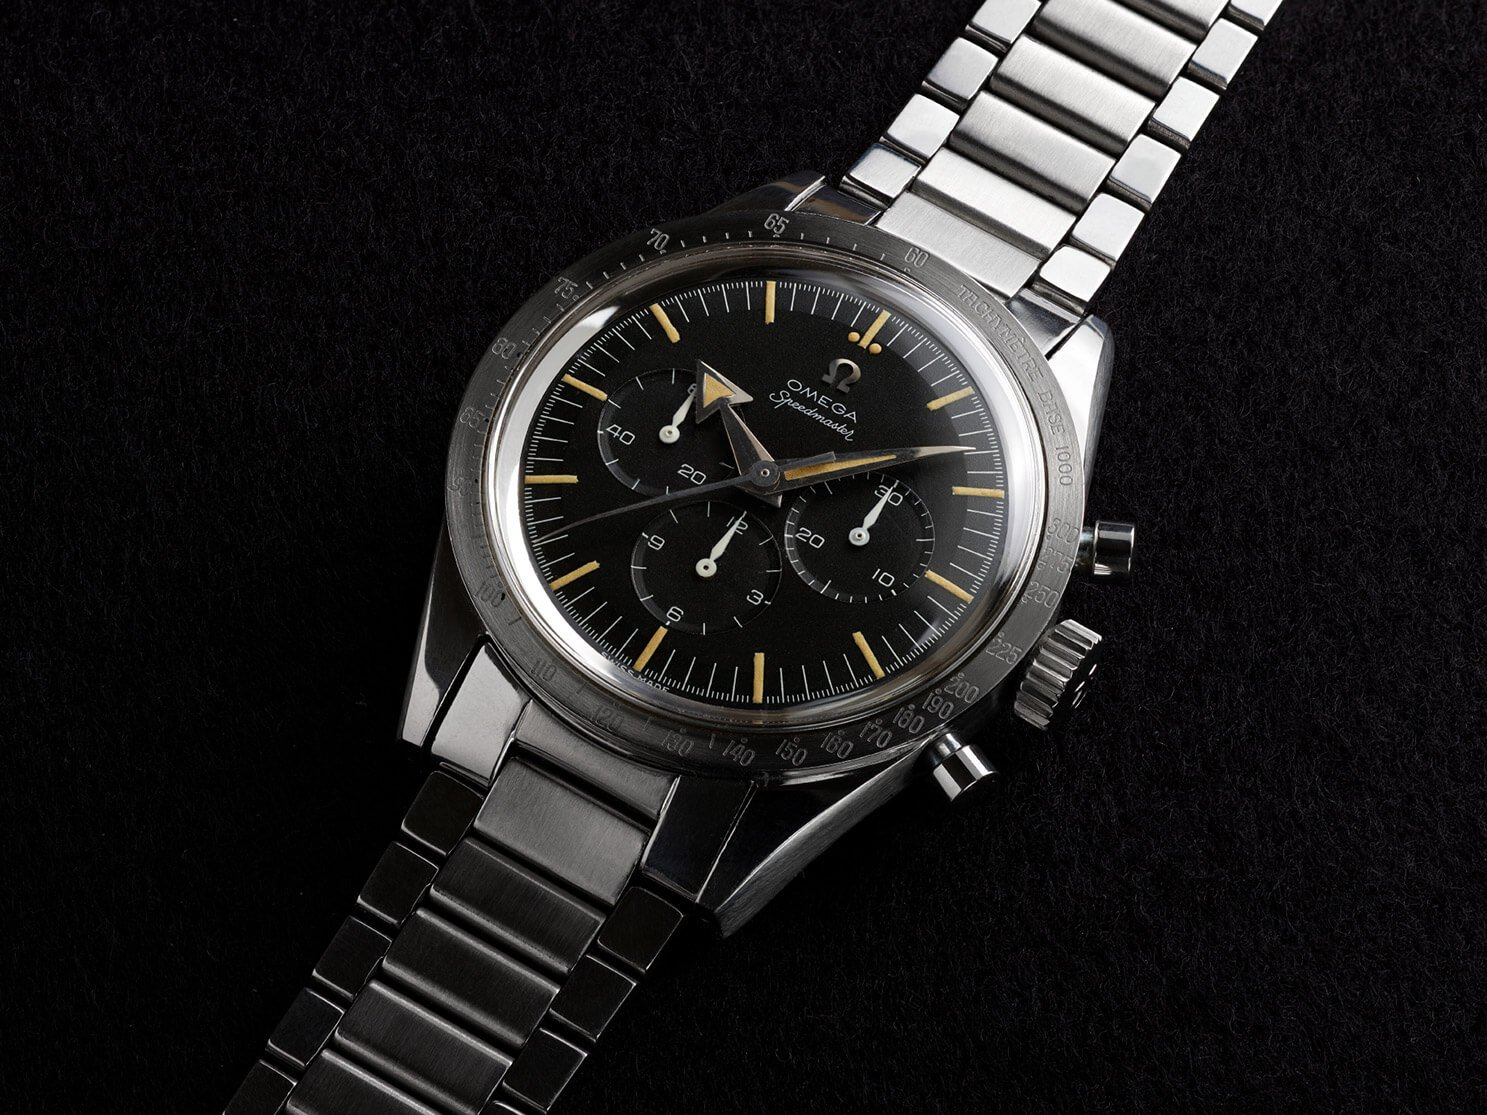 The Original Omega Speedmaster CK2915